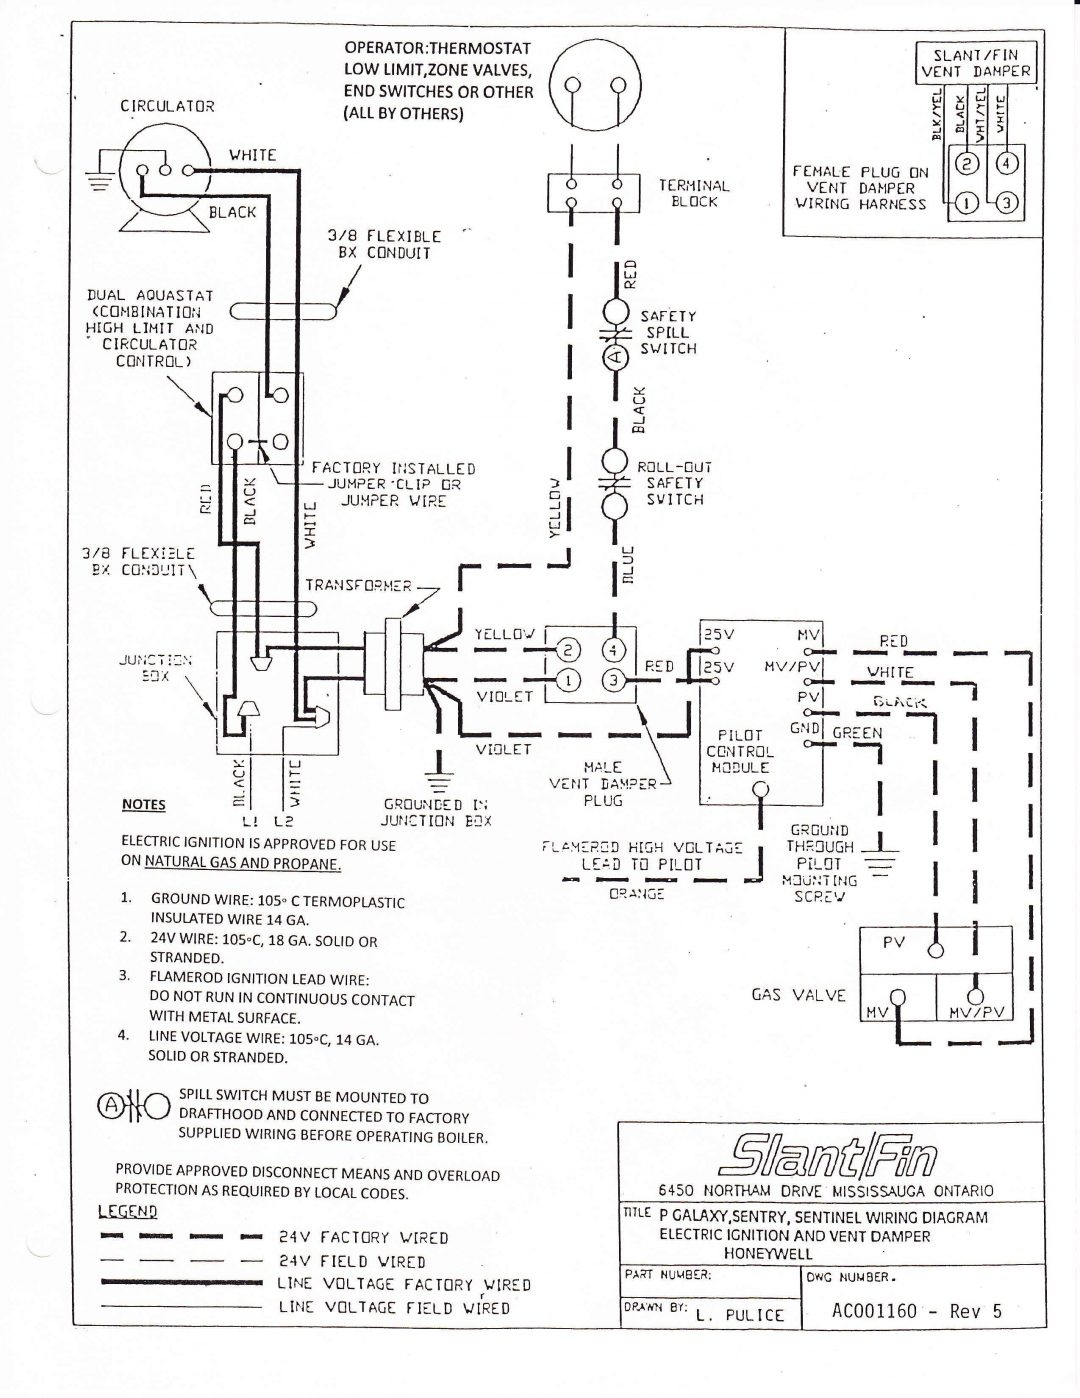 Honeywell R G Wiring Diagram